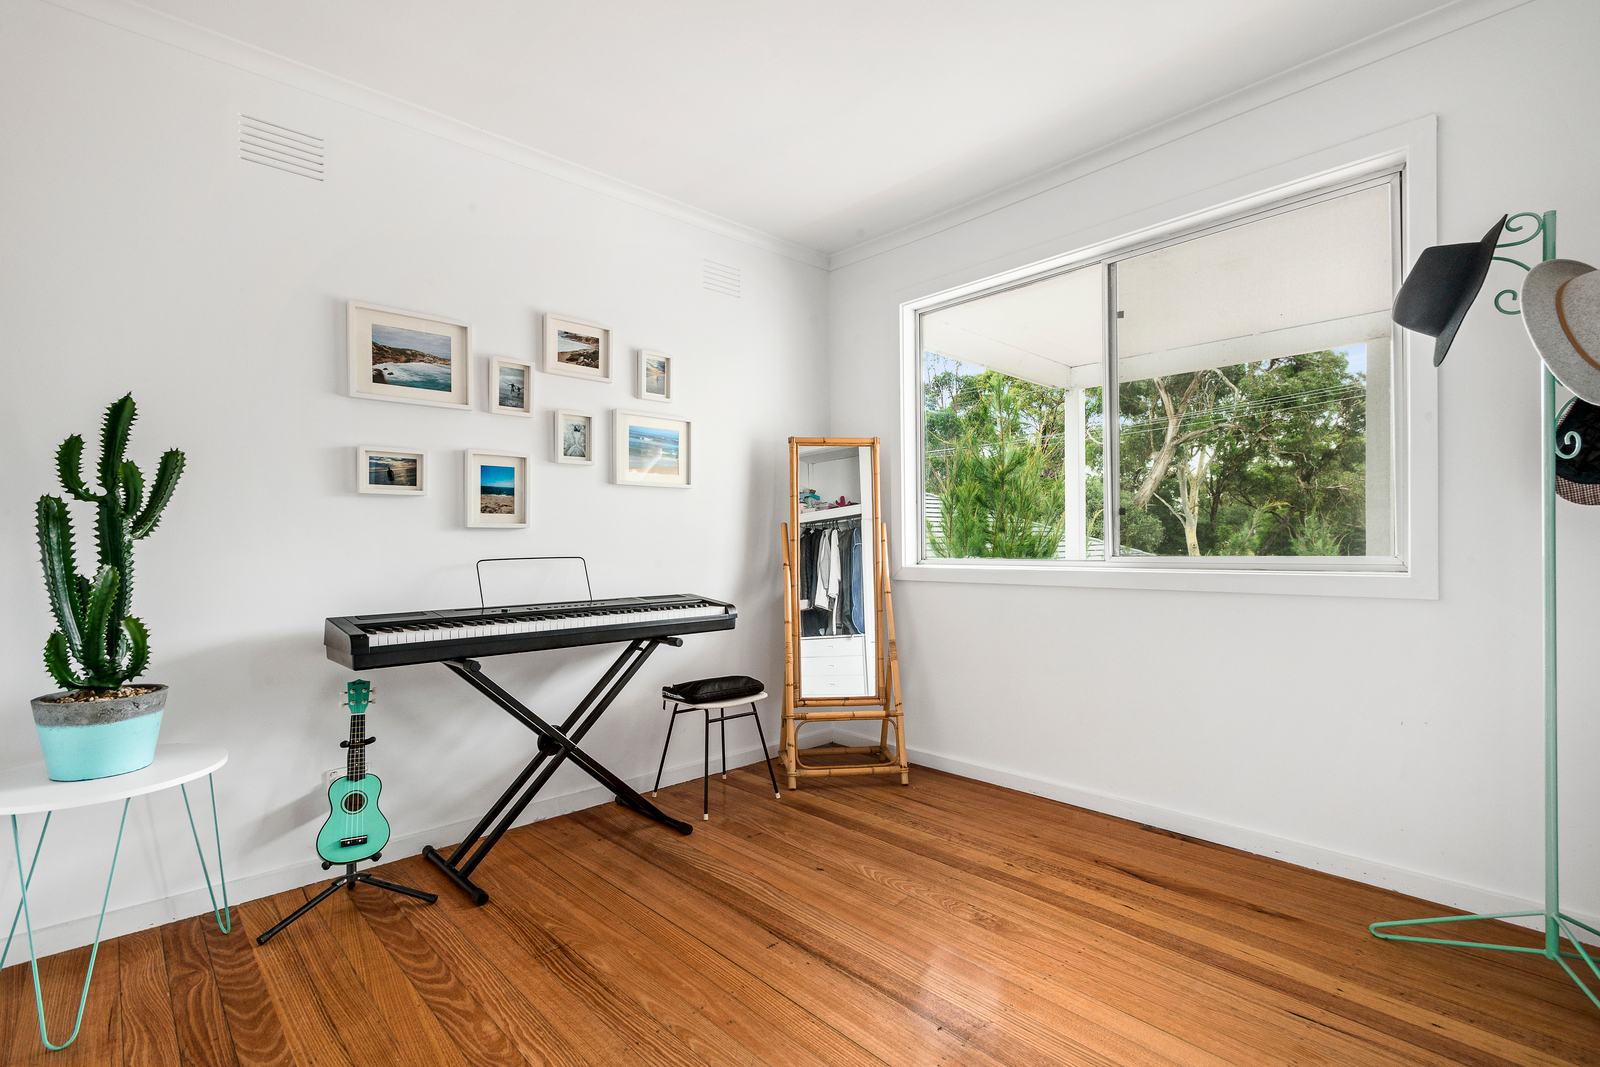 317 Jetty Road, Rosebud 3939 - Image 7